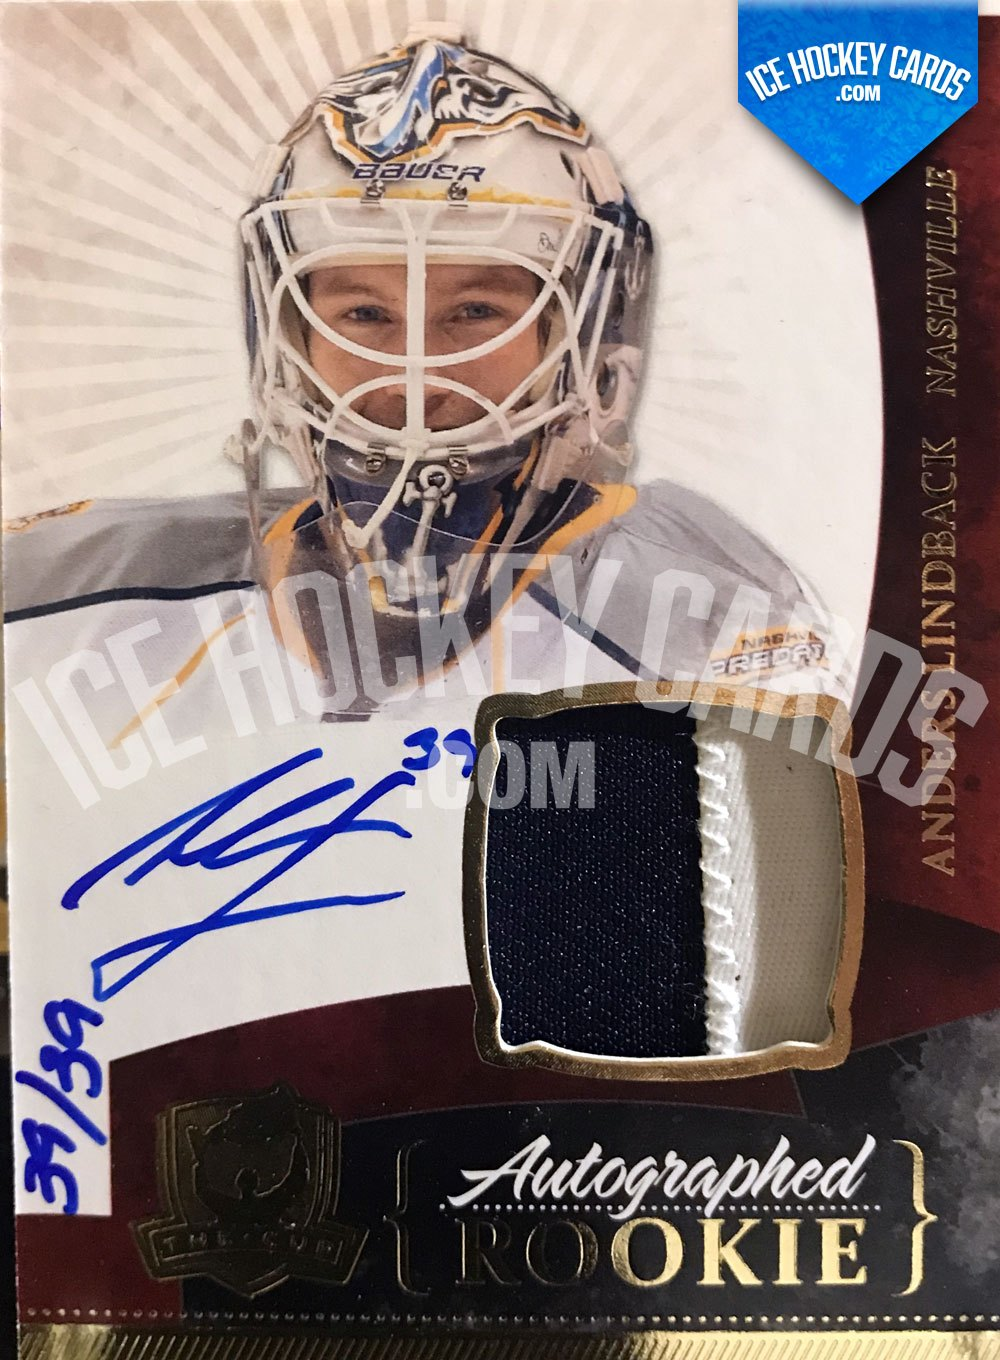 Upper Deck - The Cup 10-11 - Anders Lindback Auto Patch Rookie